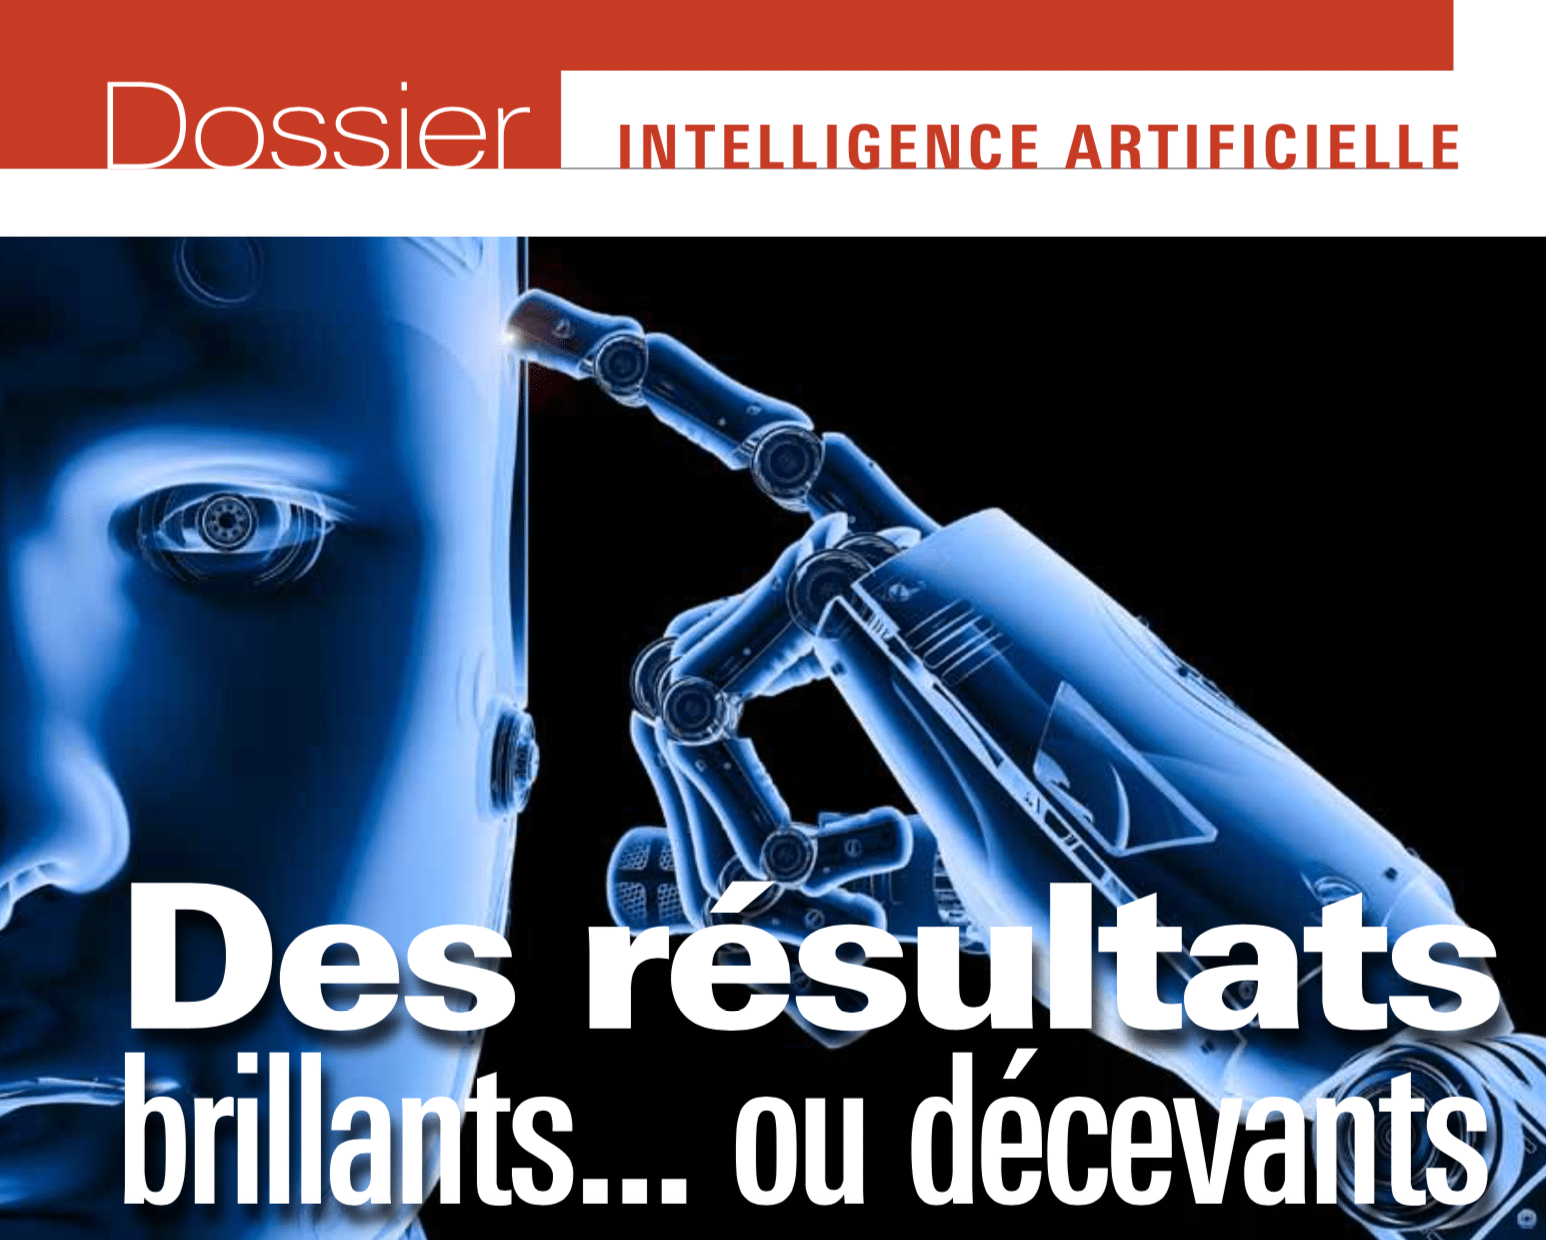 Dossier Intelligence Artificielle : Des résultats brillants... ou décevants